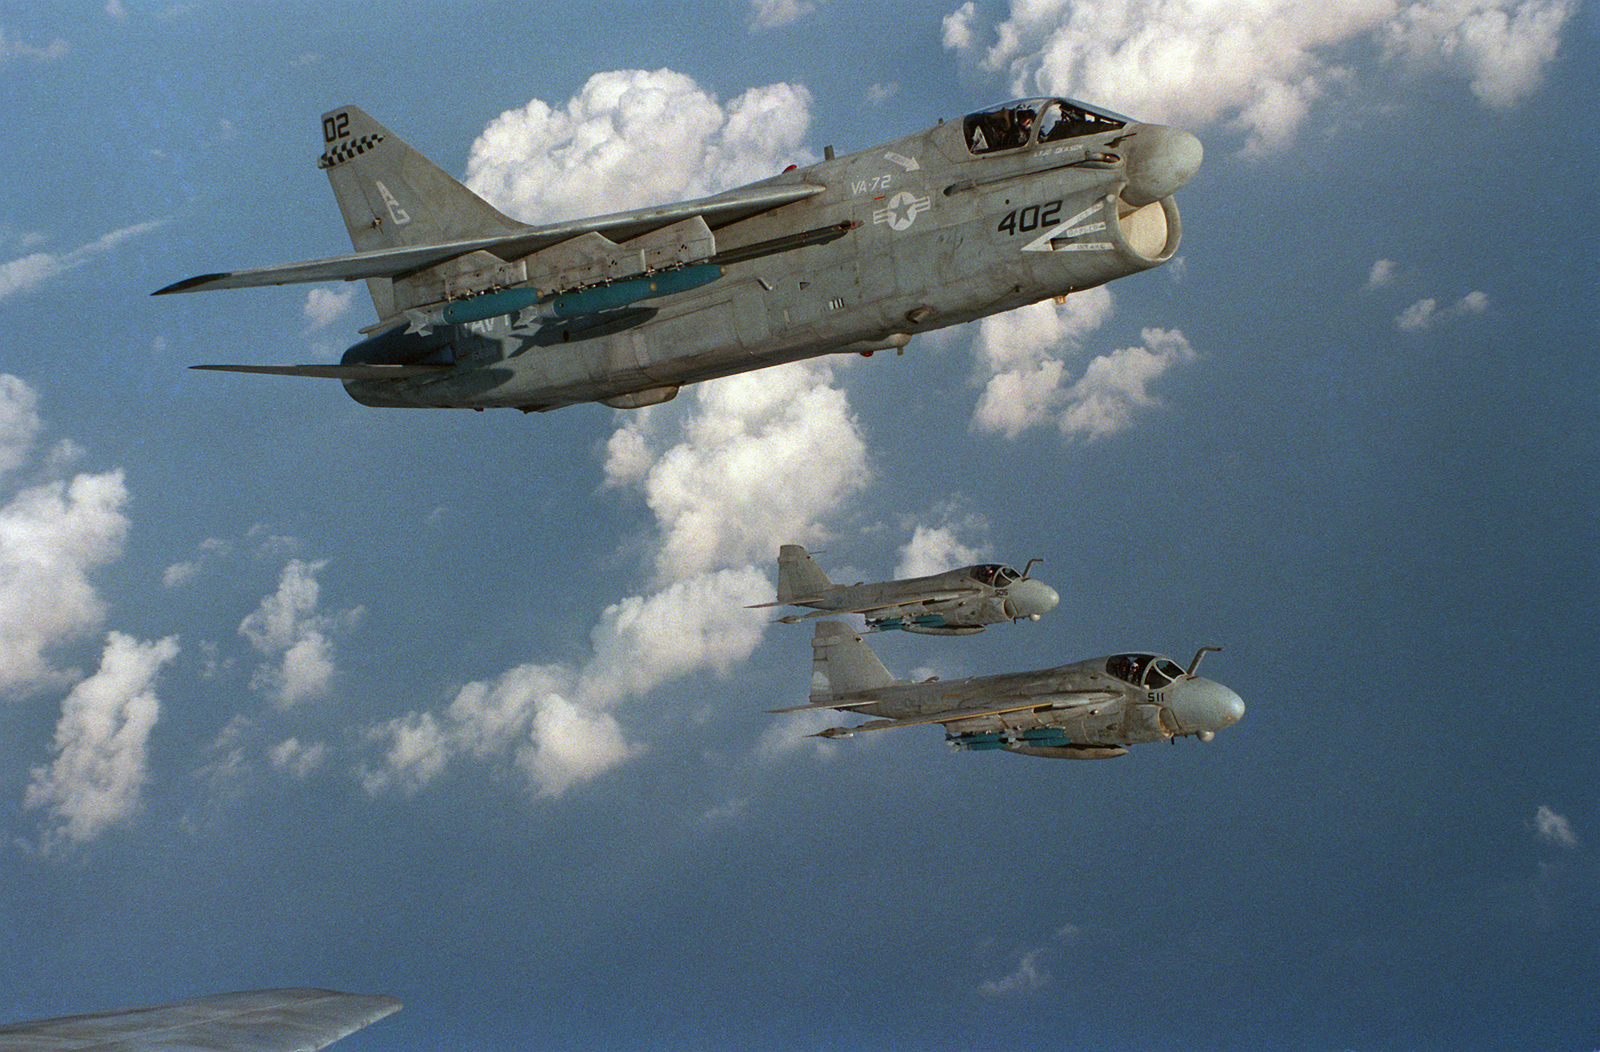 An air-to-air right side view of an Attack Squadron 46 (VA-46) A-7E Corsair II and two attack Squadron 34 (VA-34) A-6E Intruders.  Carrier Air Wing 7 (CVW-7) is assigned to the nuclear-powered aircraft carrier USS DWIGHT D. EISENHOWER (CVN 69), which is i